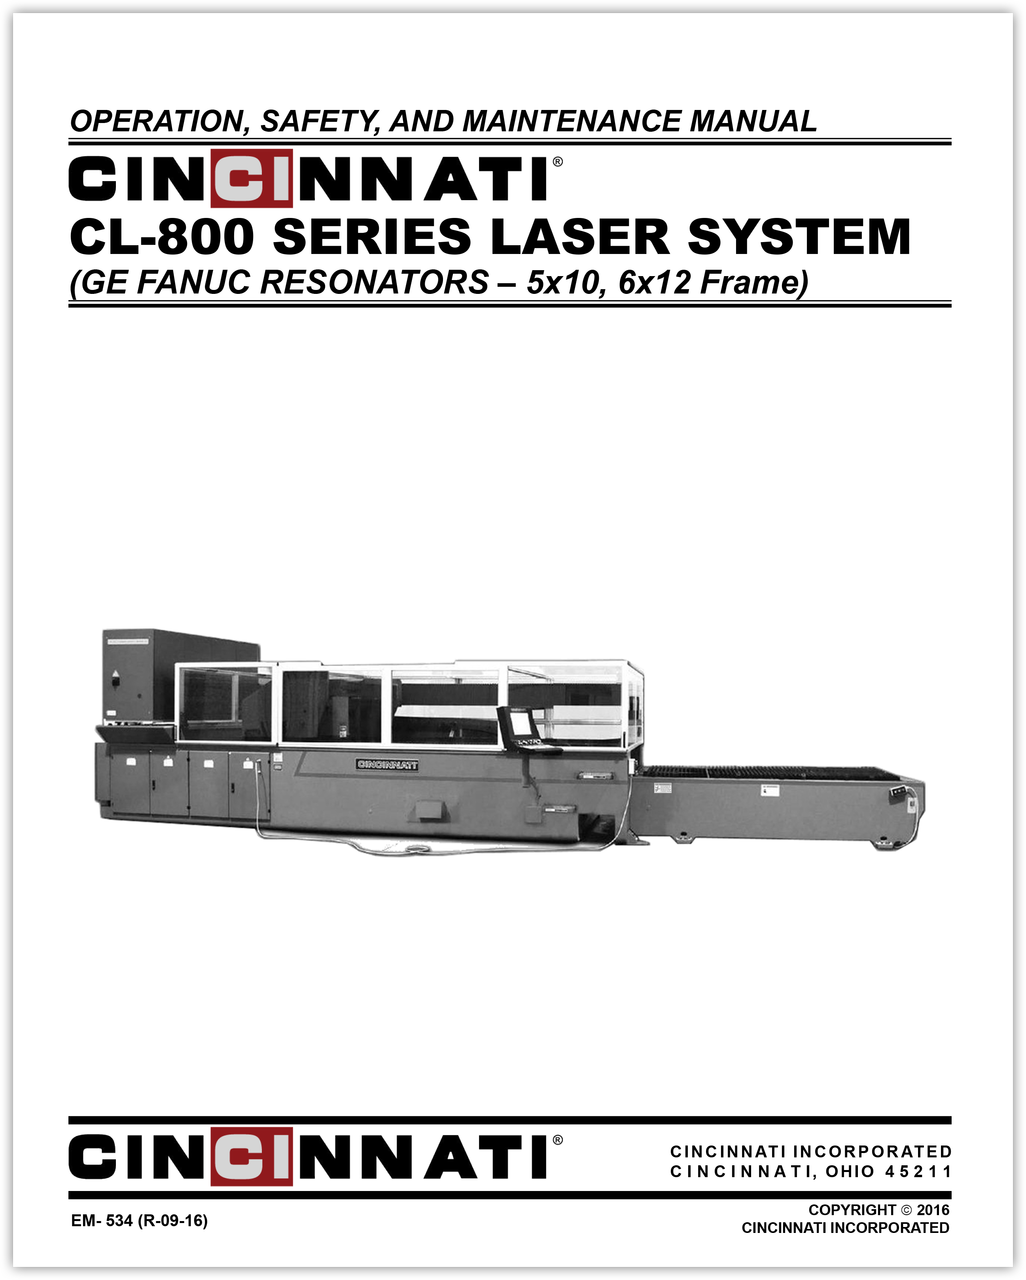 EM-534 (R-09-16) CL-800 Series Laser System_Operation, Safety and Maintenance Manual